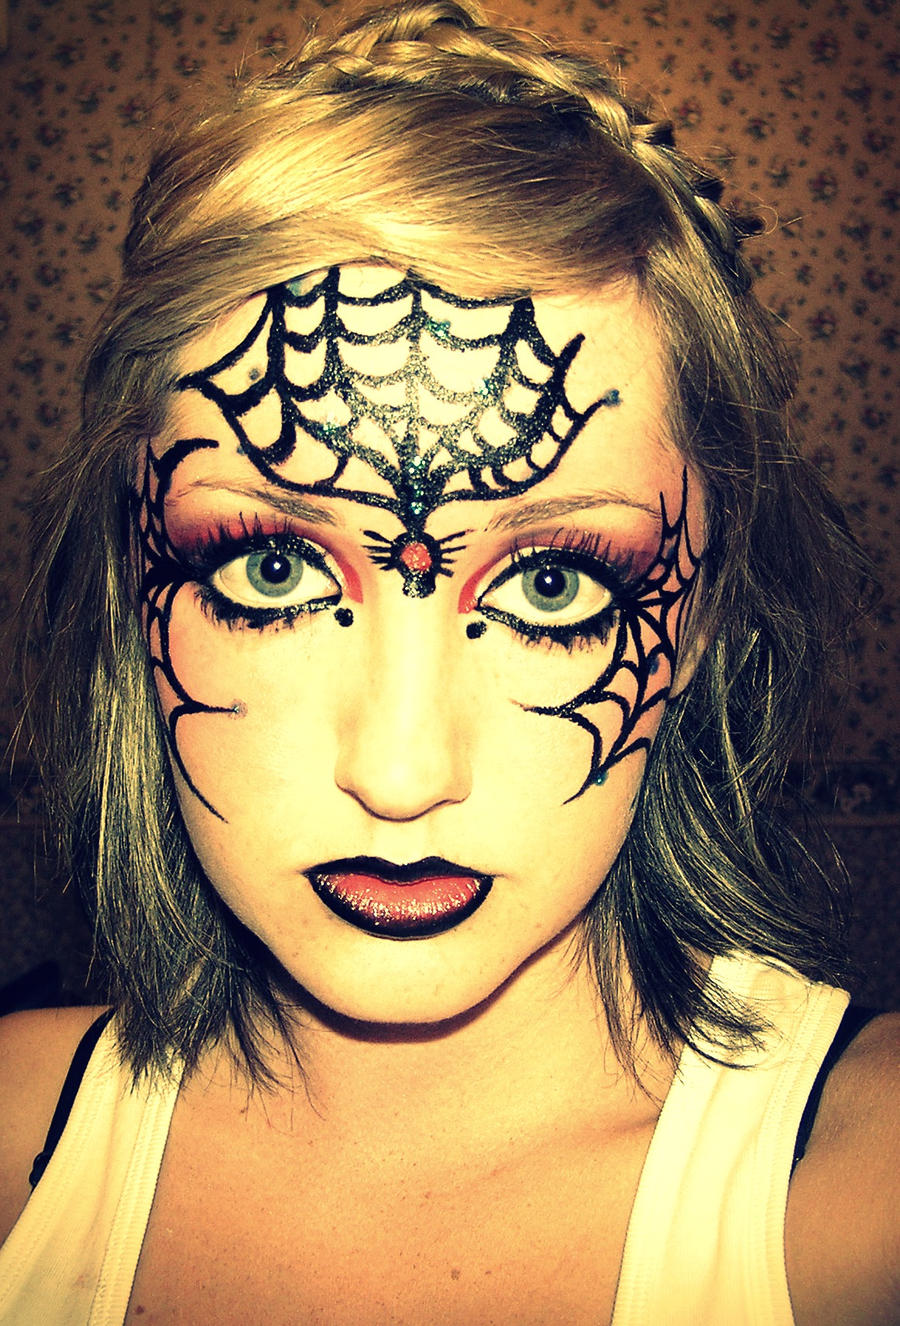 Uncategorized Spiderweb Face Paint spiderweb facepaint by taytay17 on deviantart taytay17